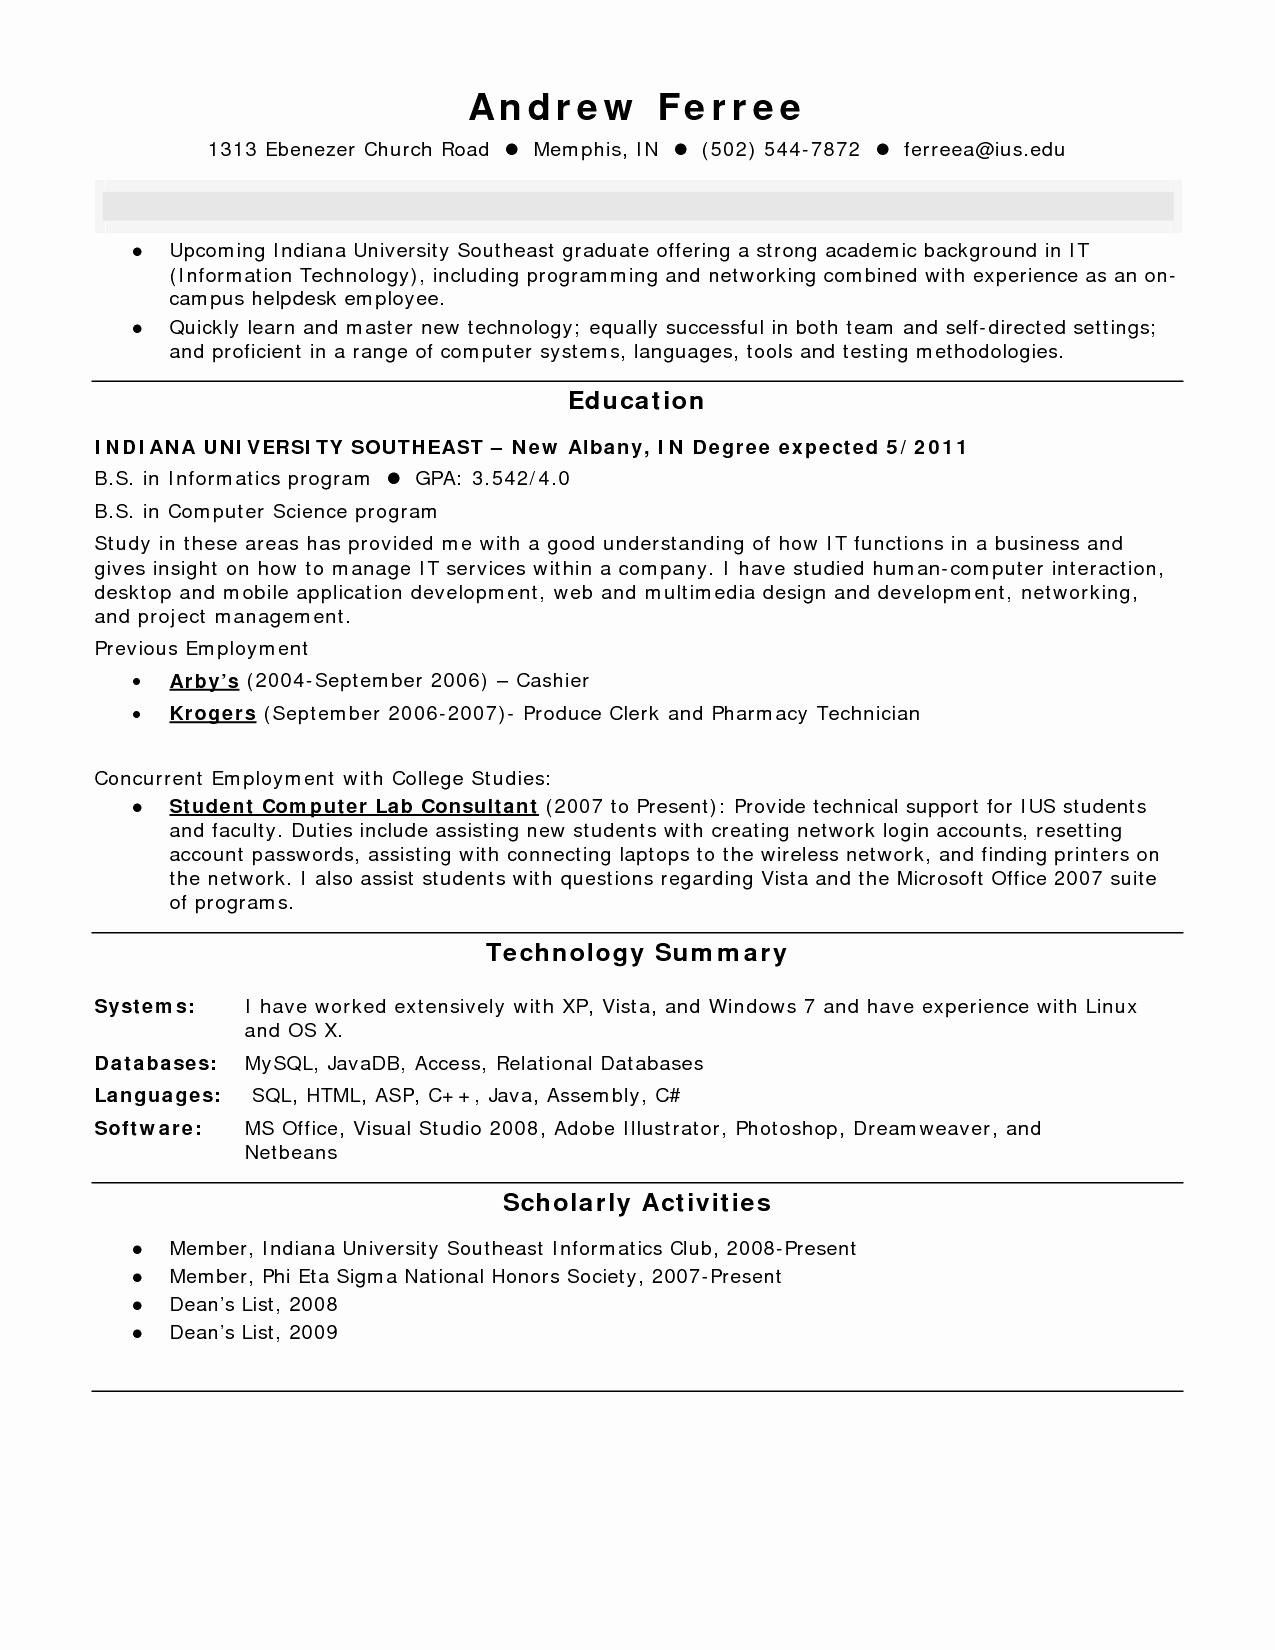 78 Best Of Images Of Example Of Resume for Fresh Graduate